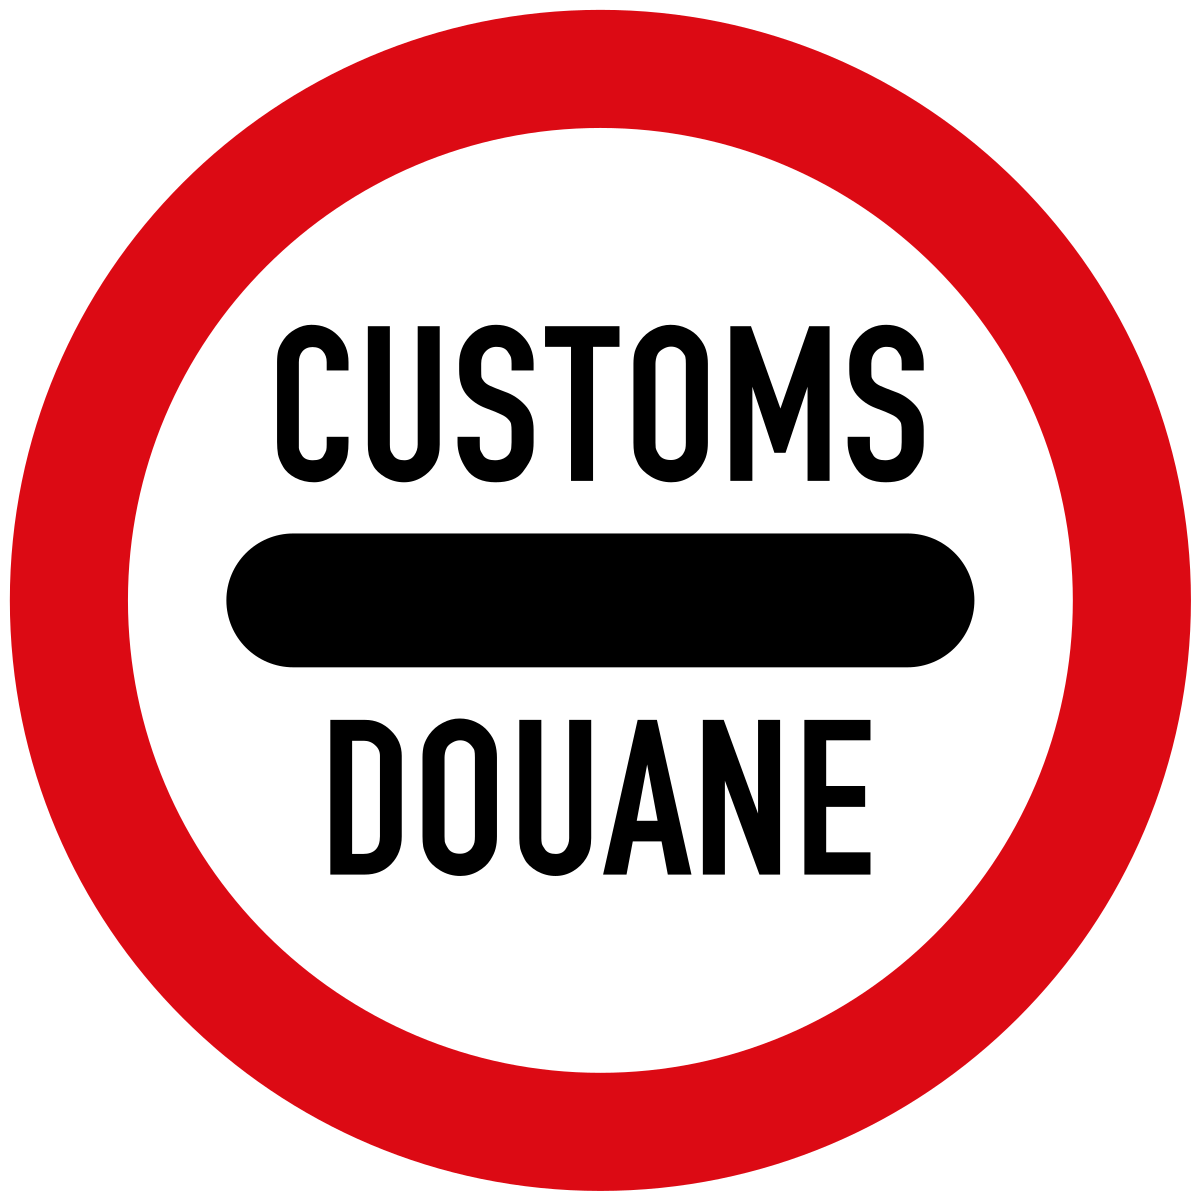 Role of custom authorities